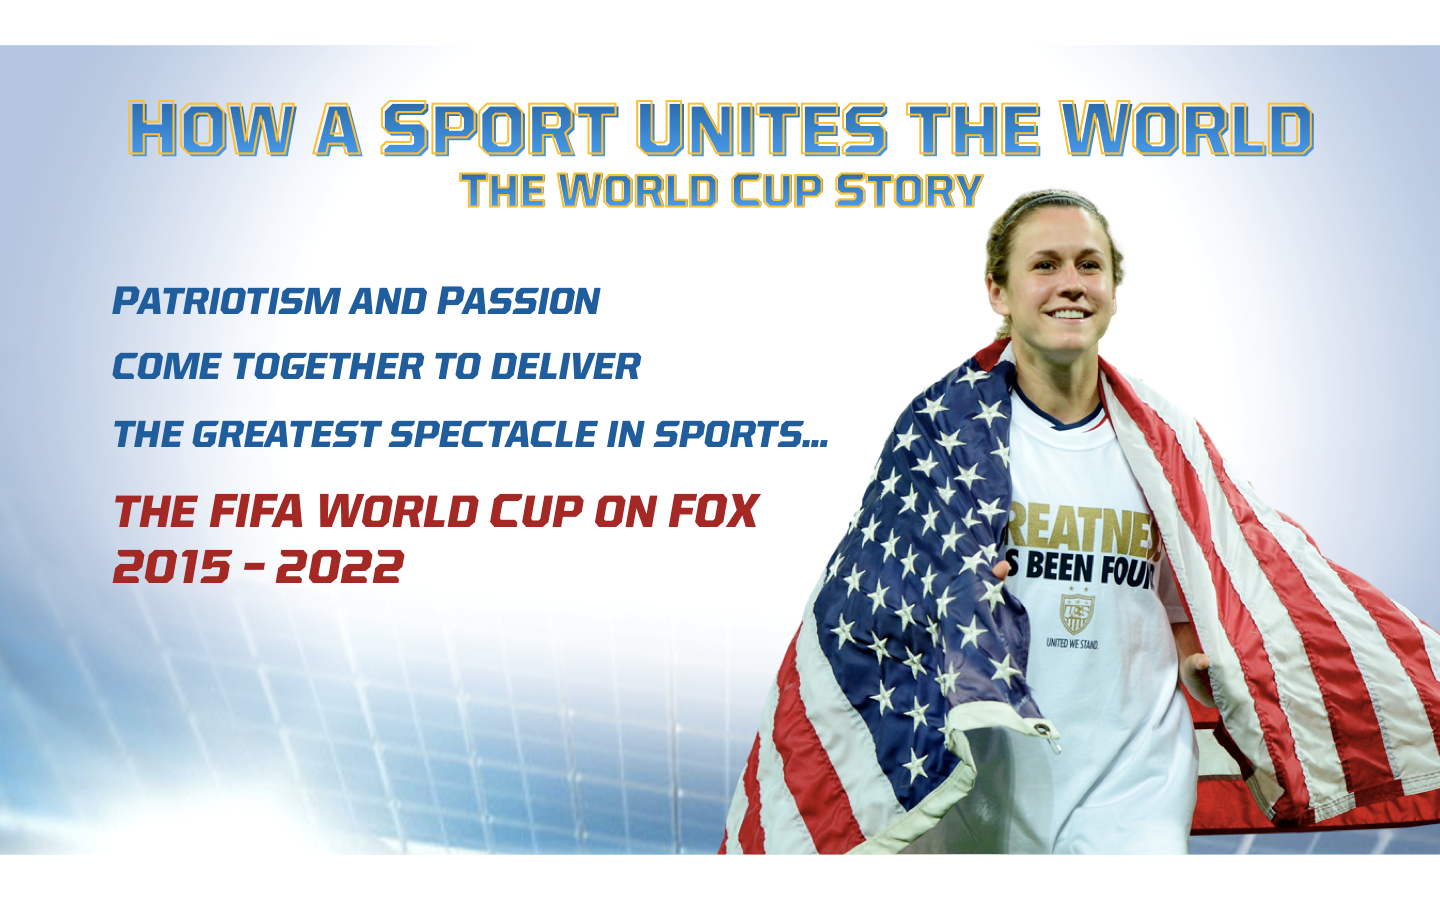 FIFA_on_FOX-2.png